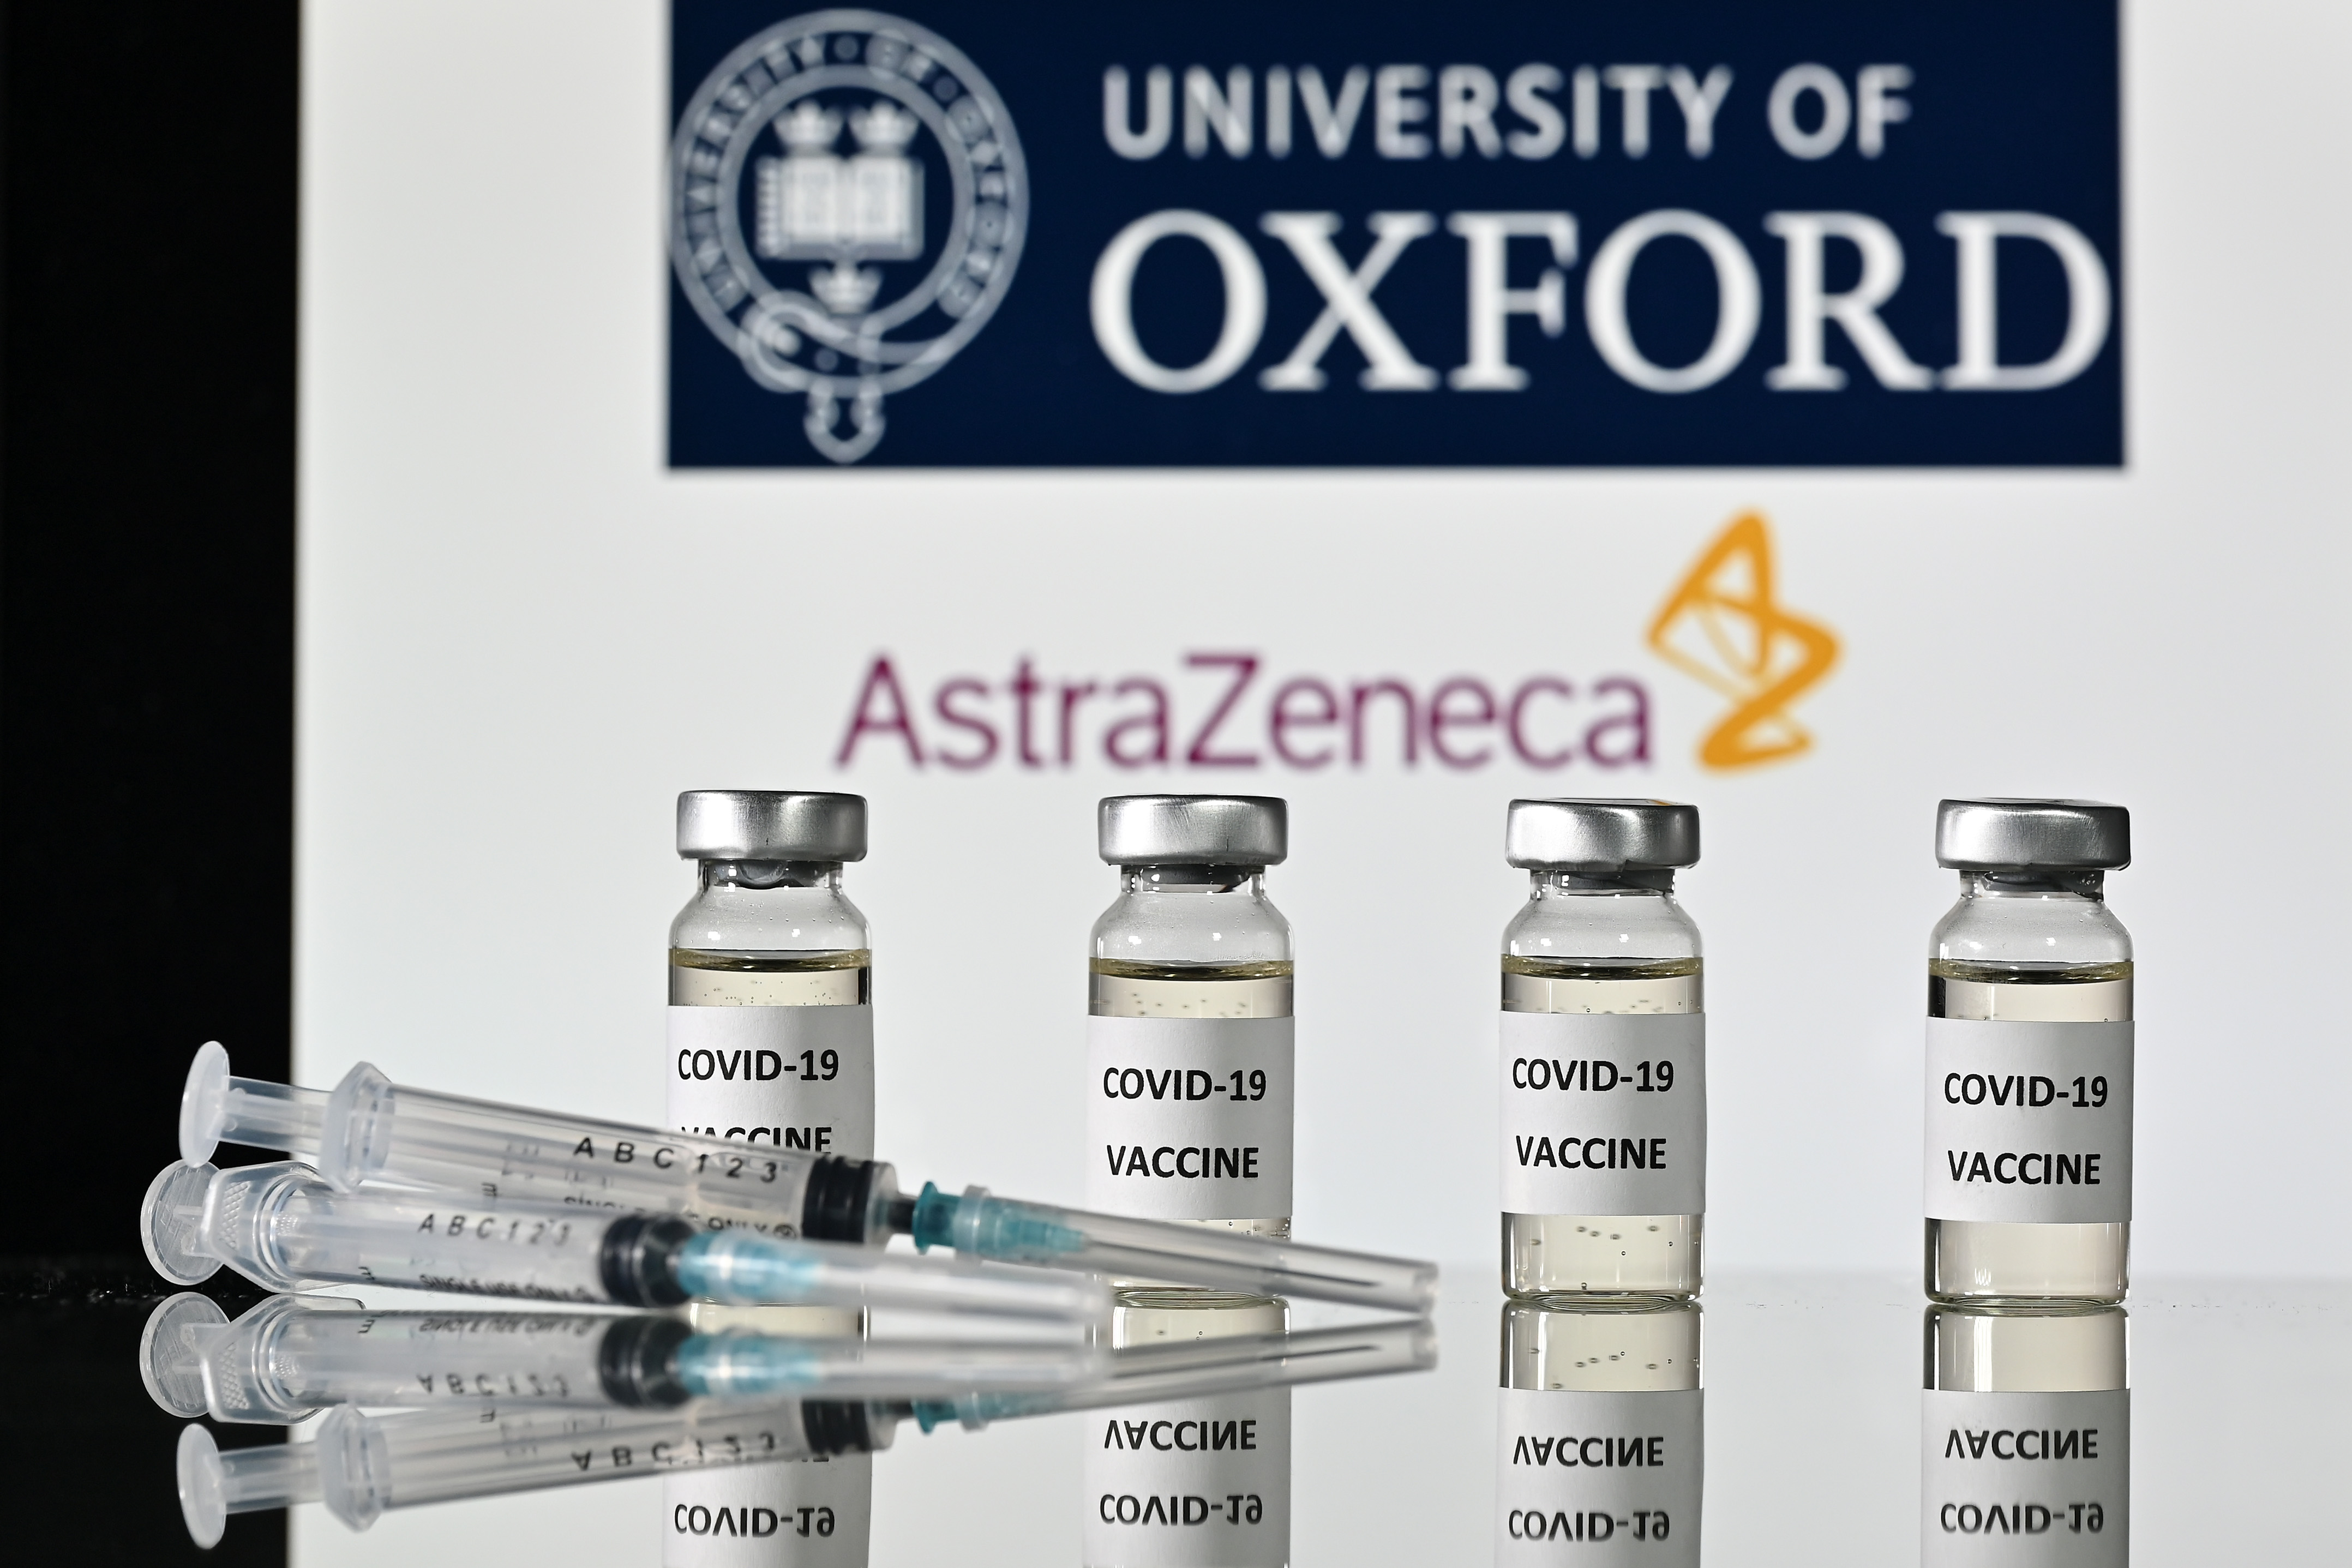 Oxford AstraZeneca